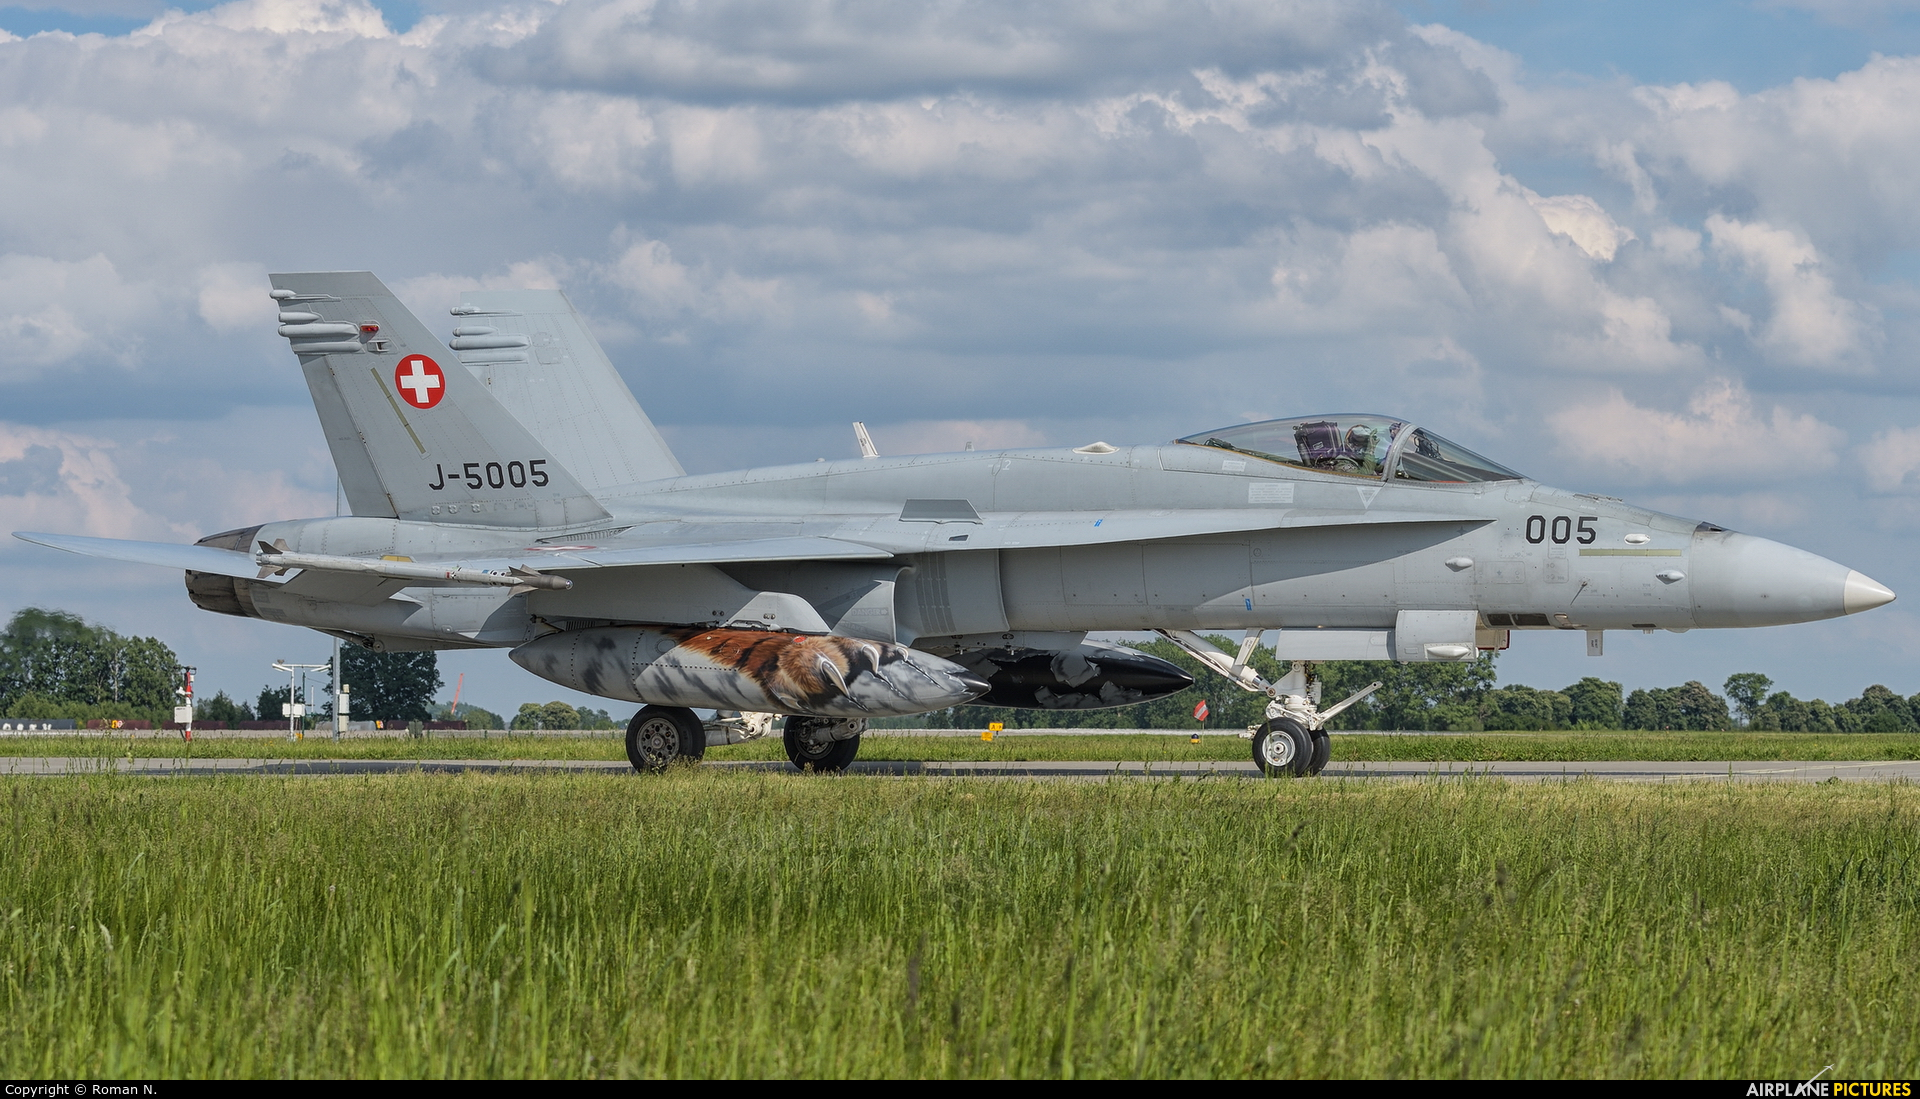 Switzerland - Air Force J-5005 aircraft at Poznań - Krzesiny